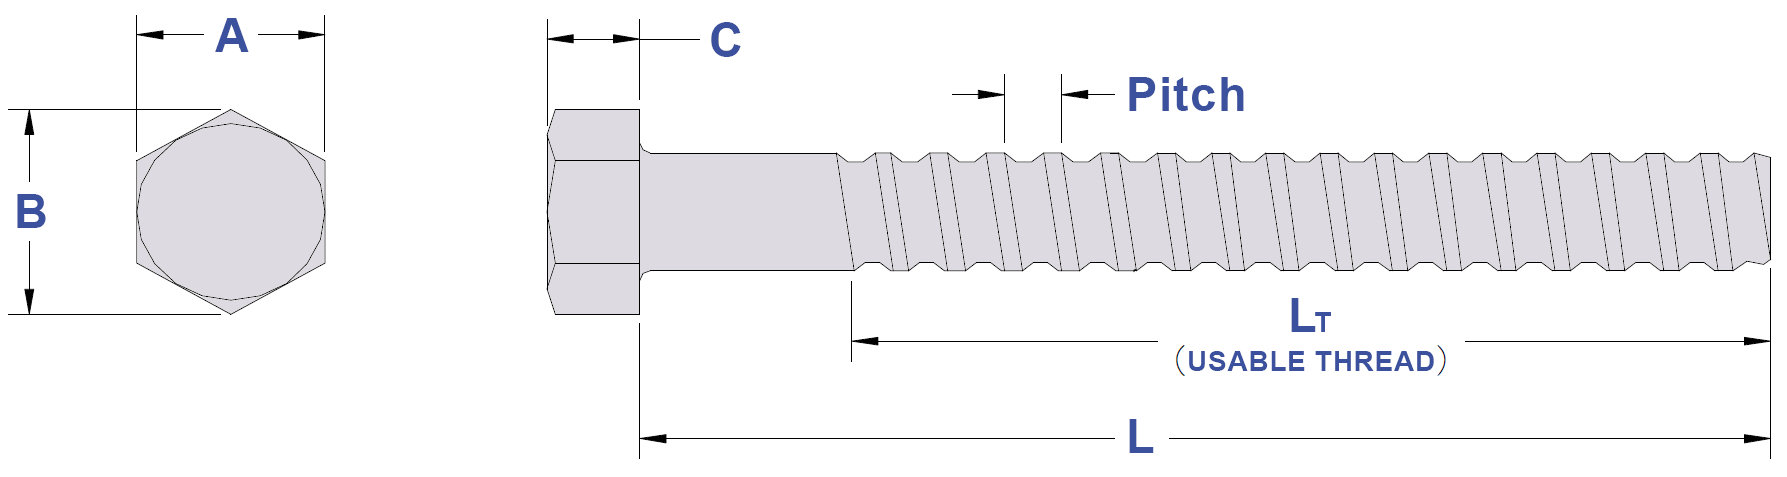 Coil Thread Length Drawing